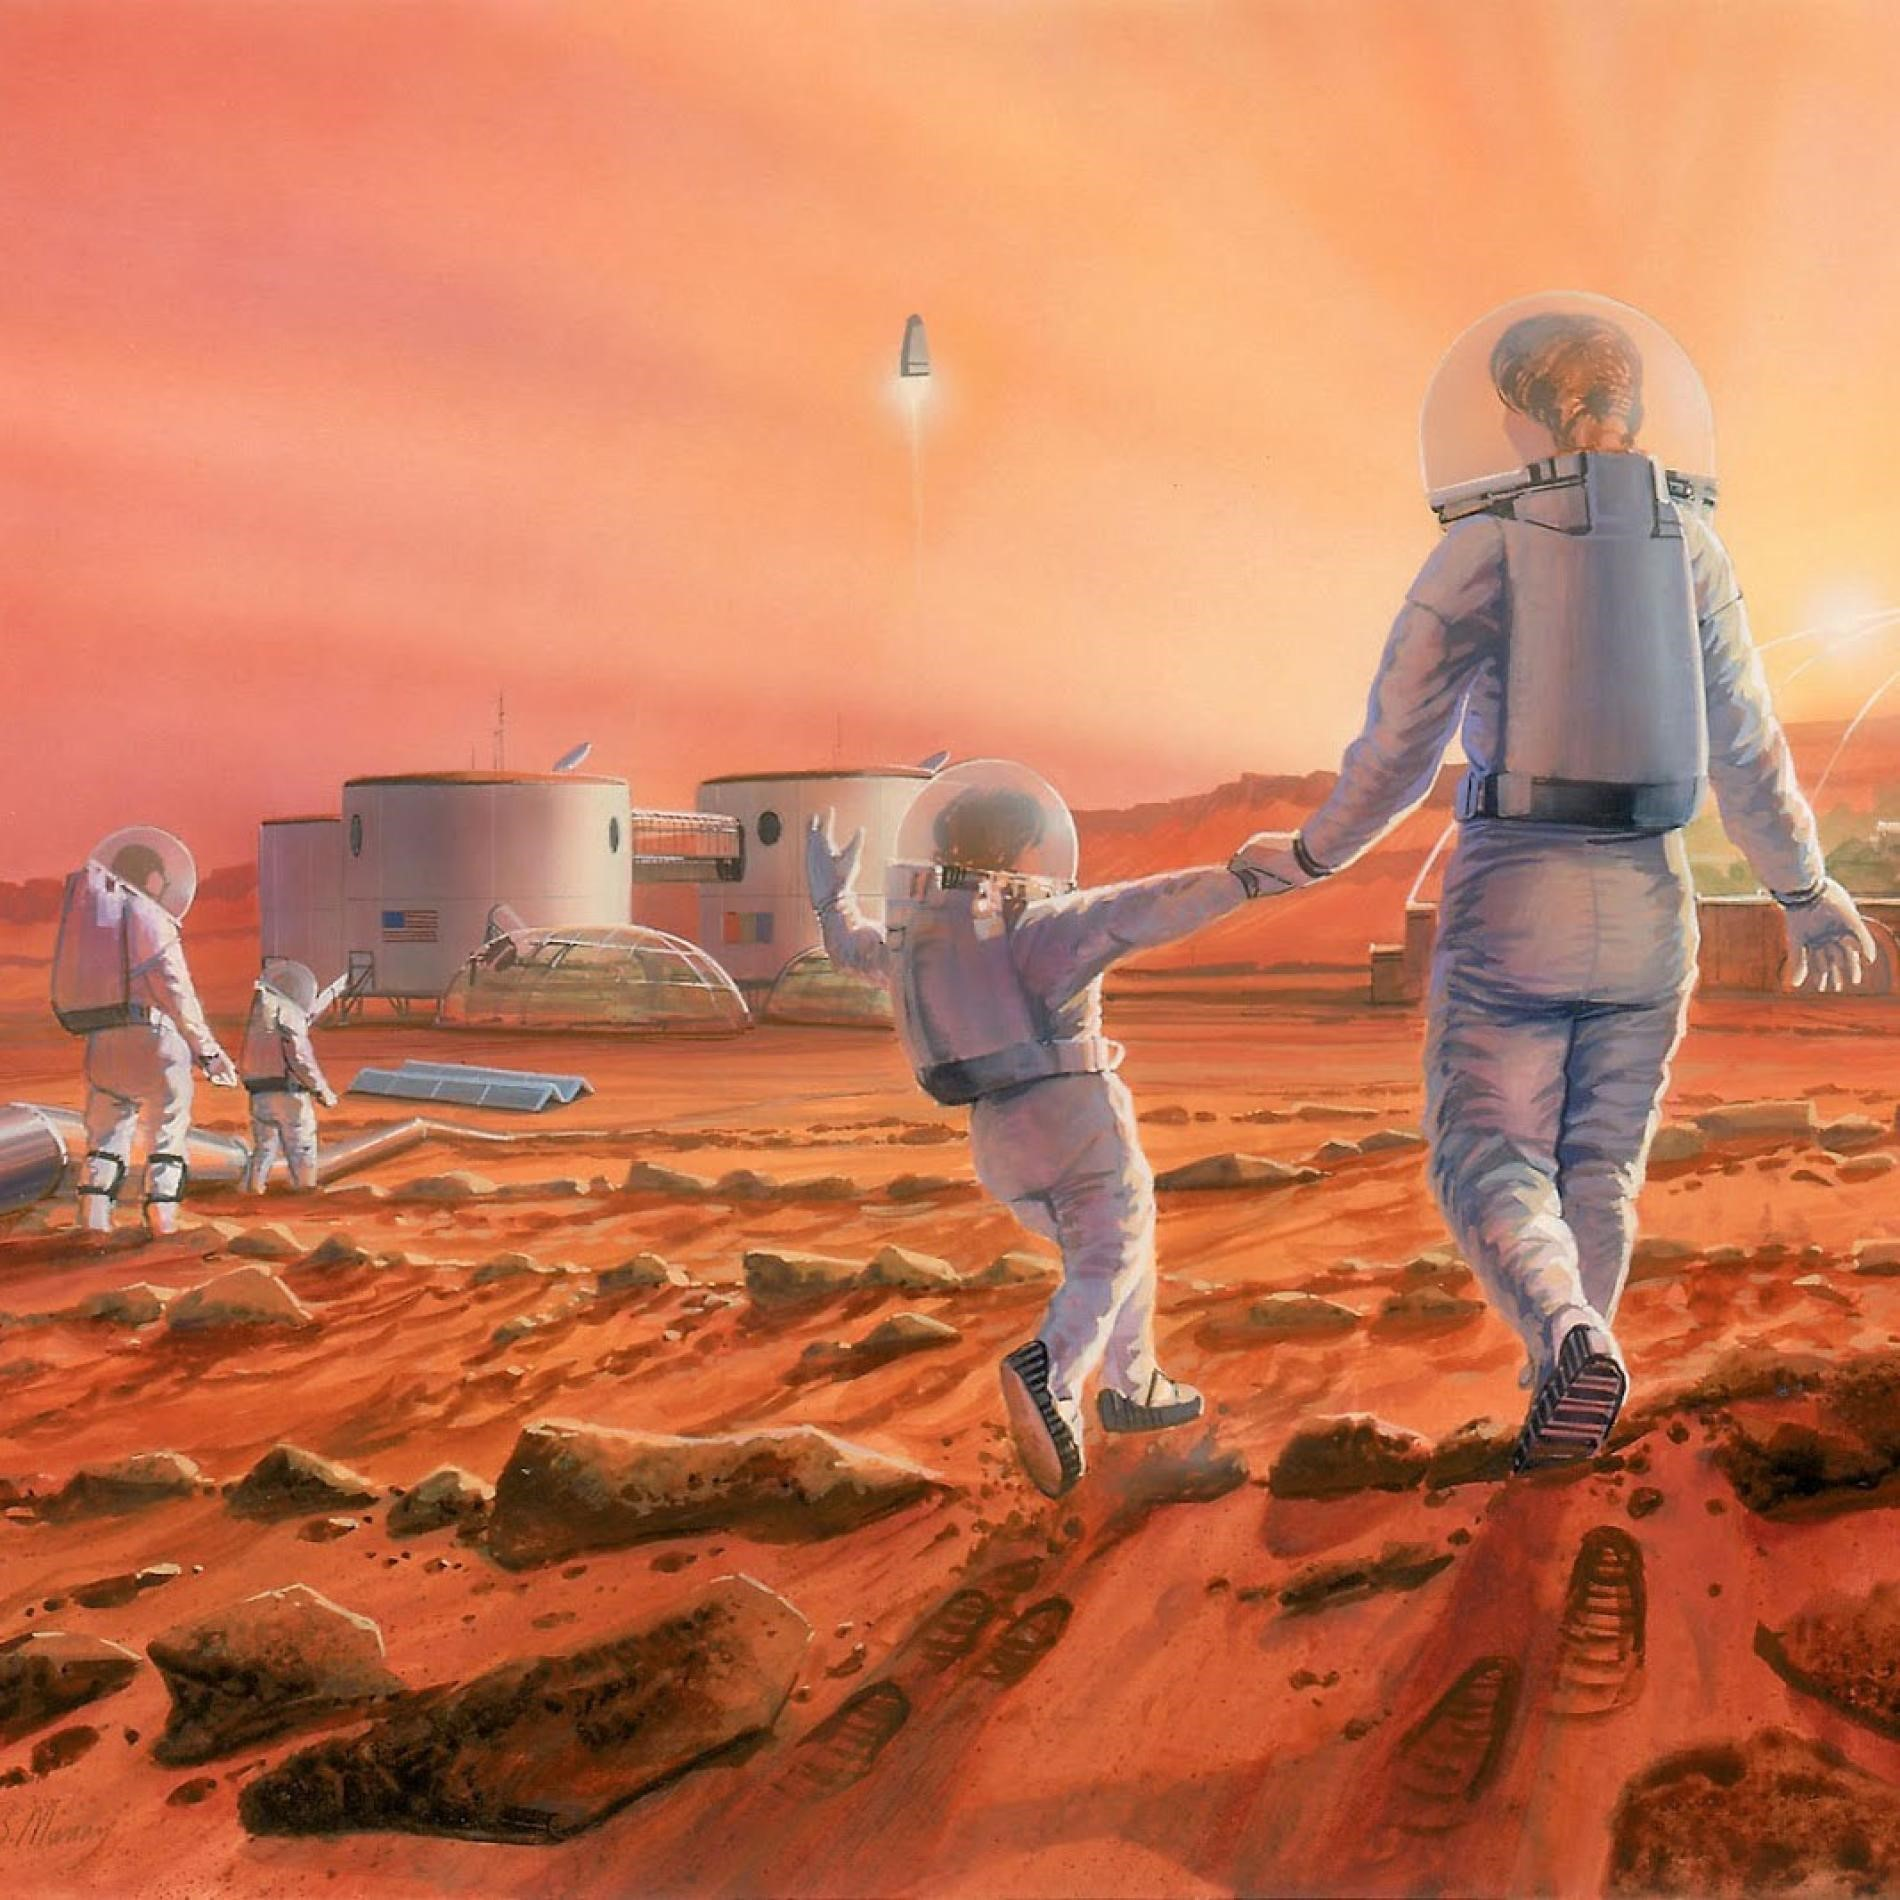 Our future on Mars? Image credit Robert Murray, The Mars Society